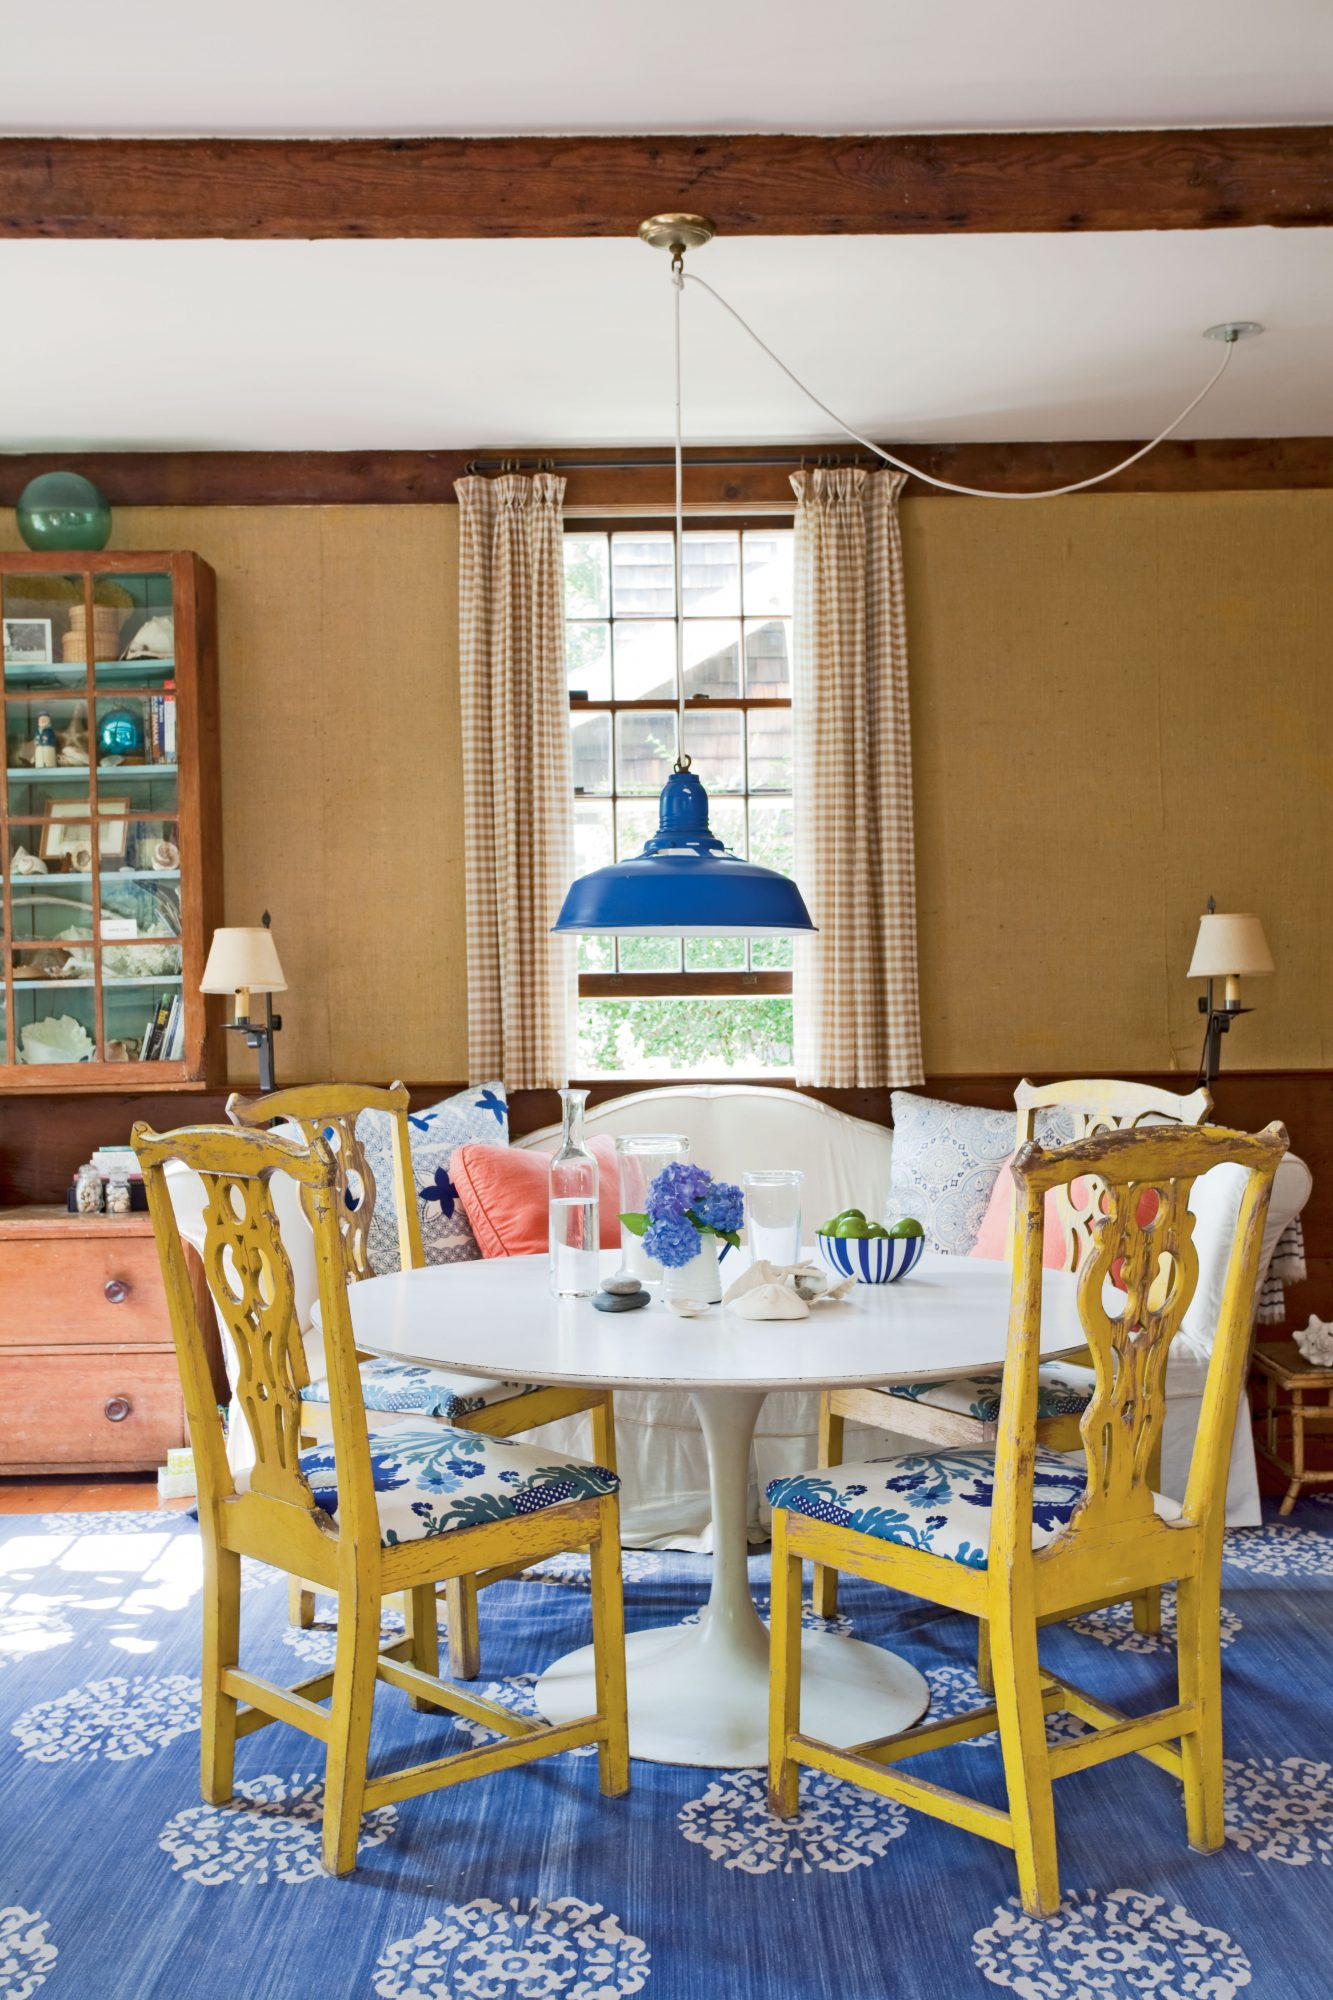 The once-dingy white industrial pendant light was simply utilitarian before being doused with cobalt paint. A coat of sunny yellow takes the Chippendale chairs from traditional to kicky with the stroke of a paintbrush. Mixing finishes like what's on these tables and chairs adds textual variety.